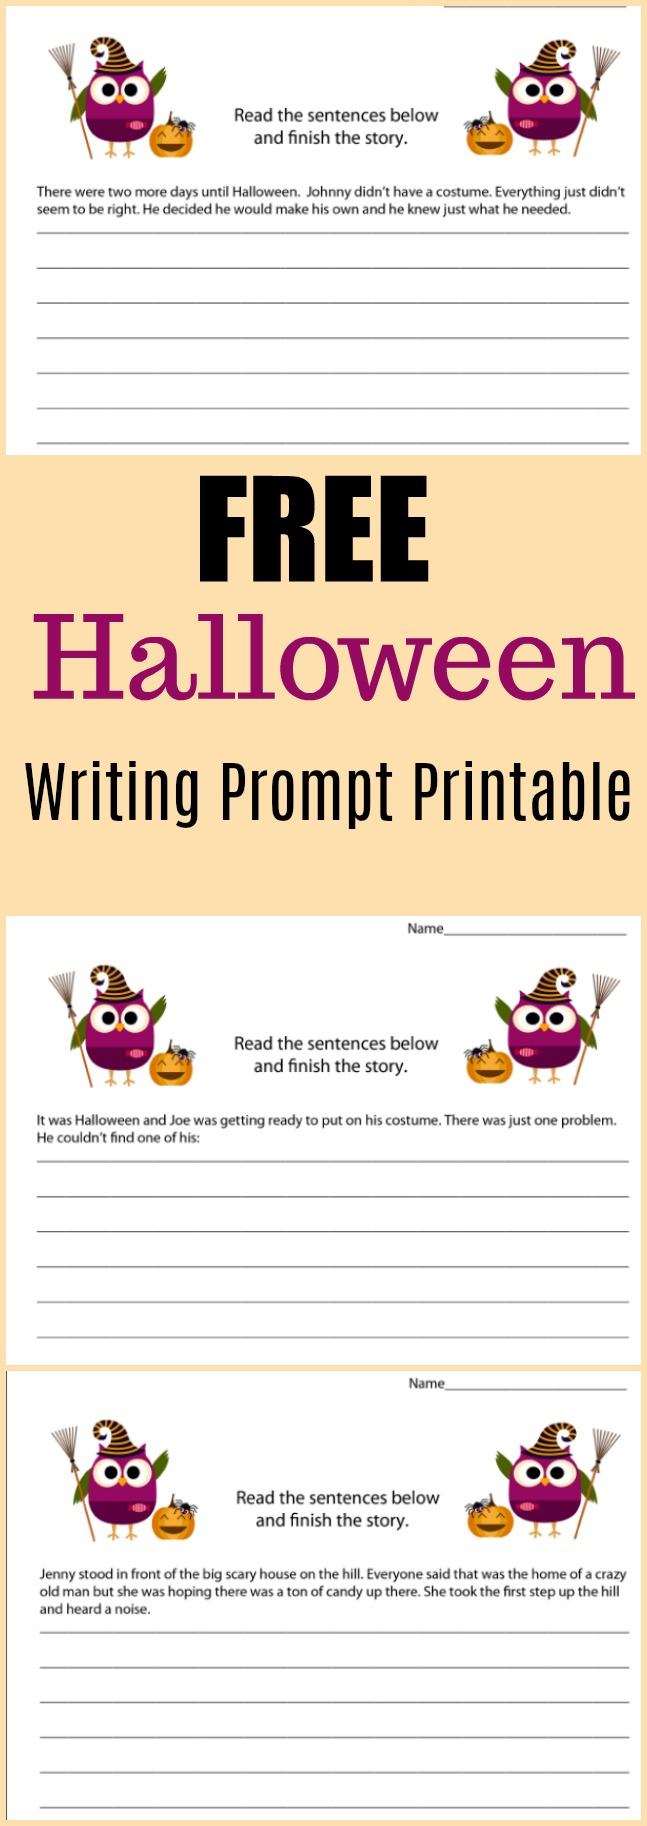 Free Halloween Writing Prompt Printable